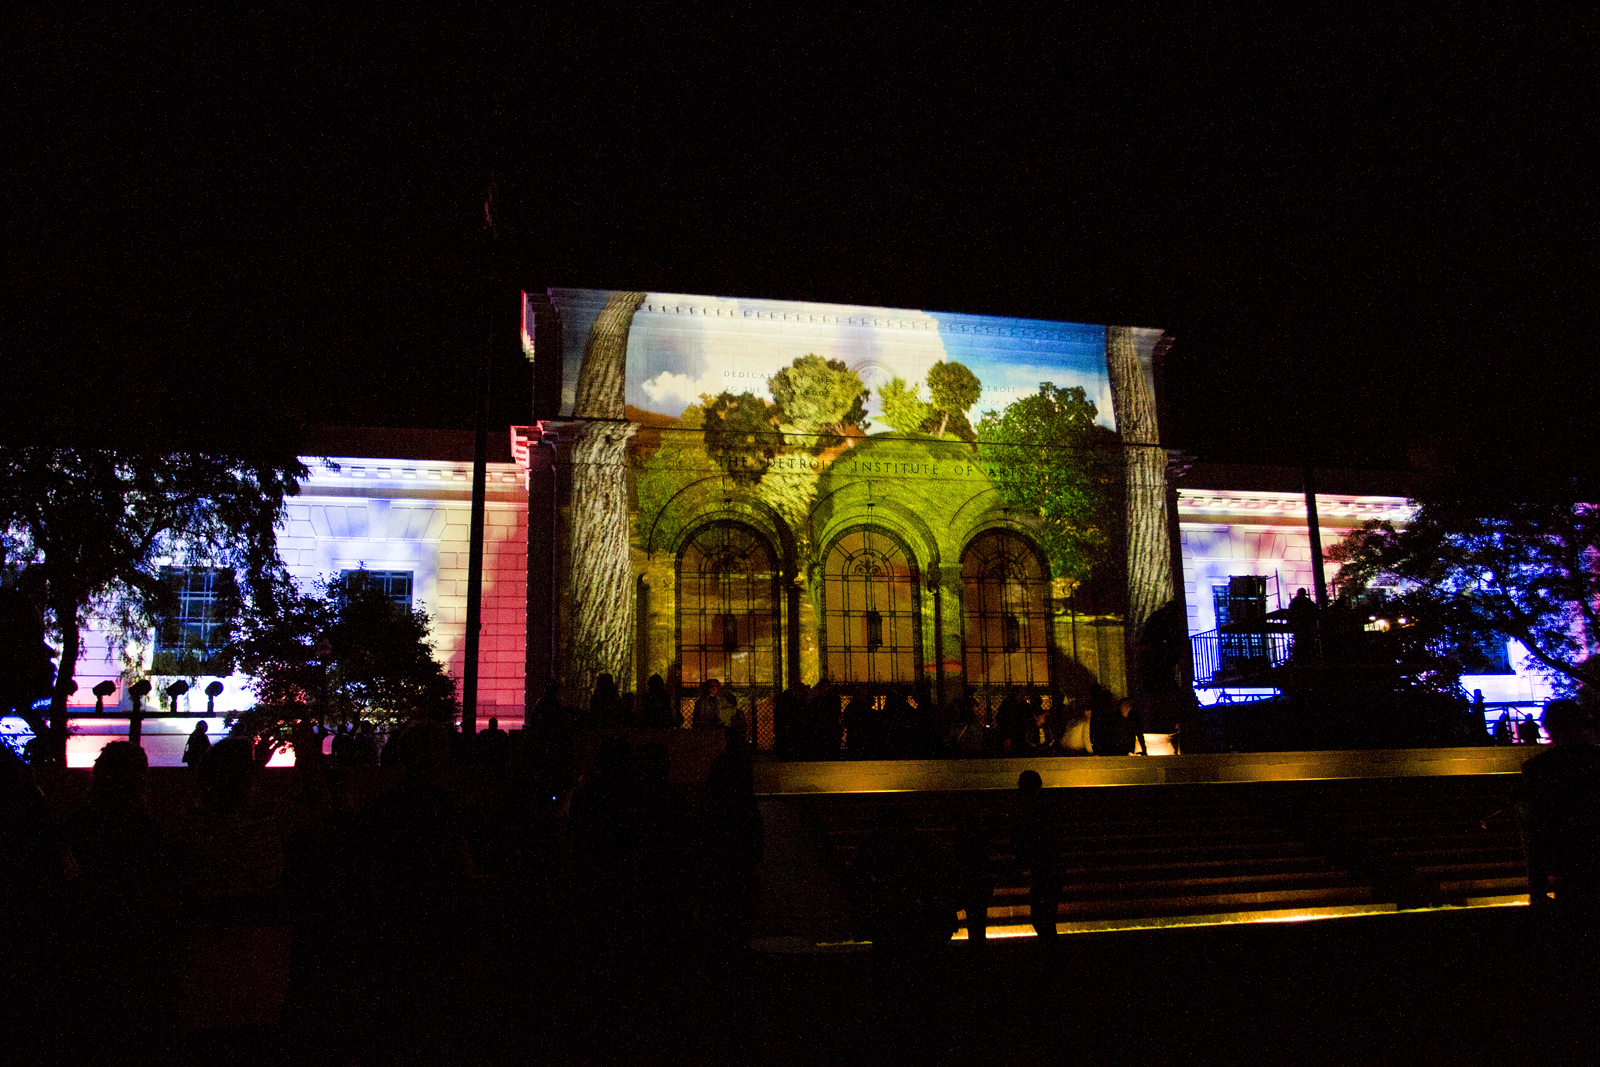 Dlectricity_0174